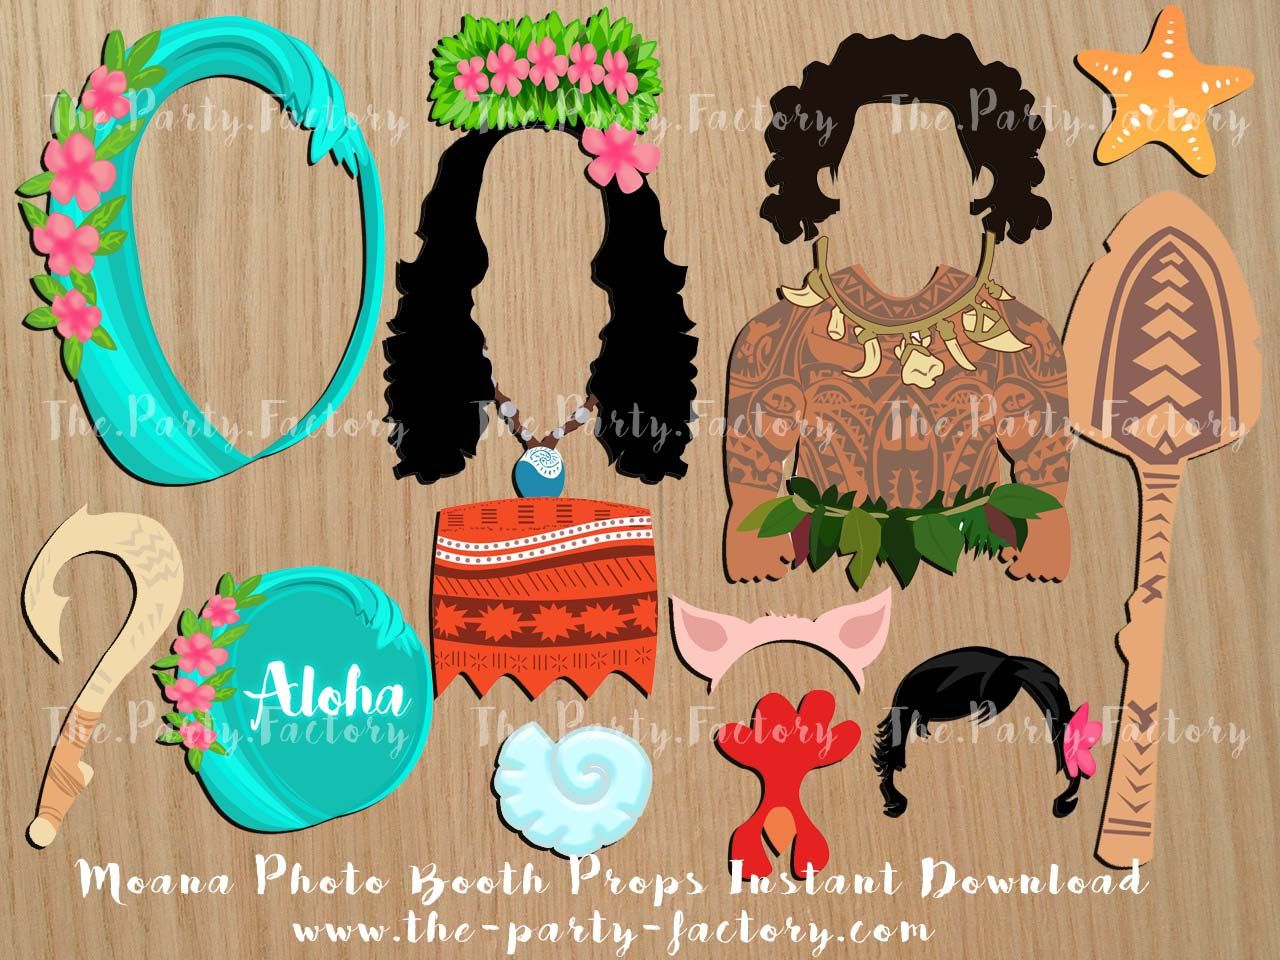 Moana Themed Photo Booth Props Instant Download Digital